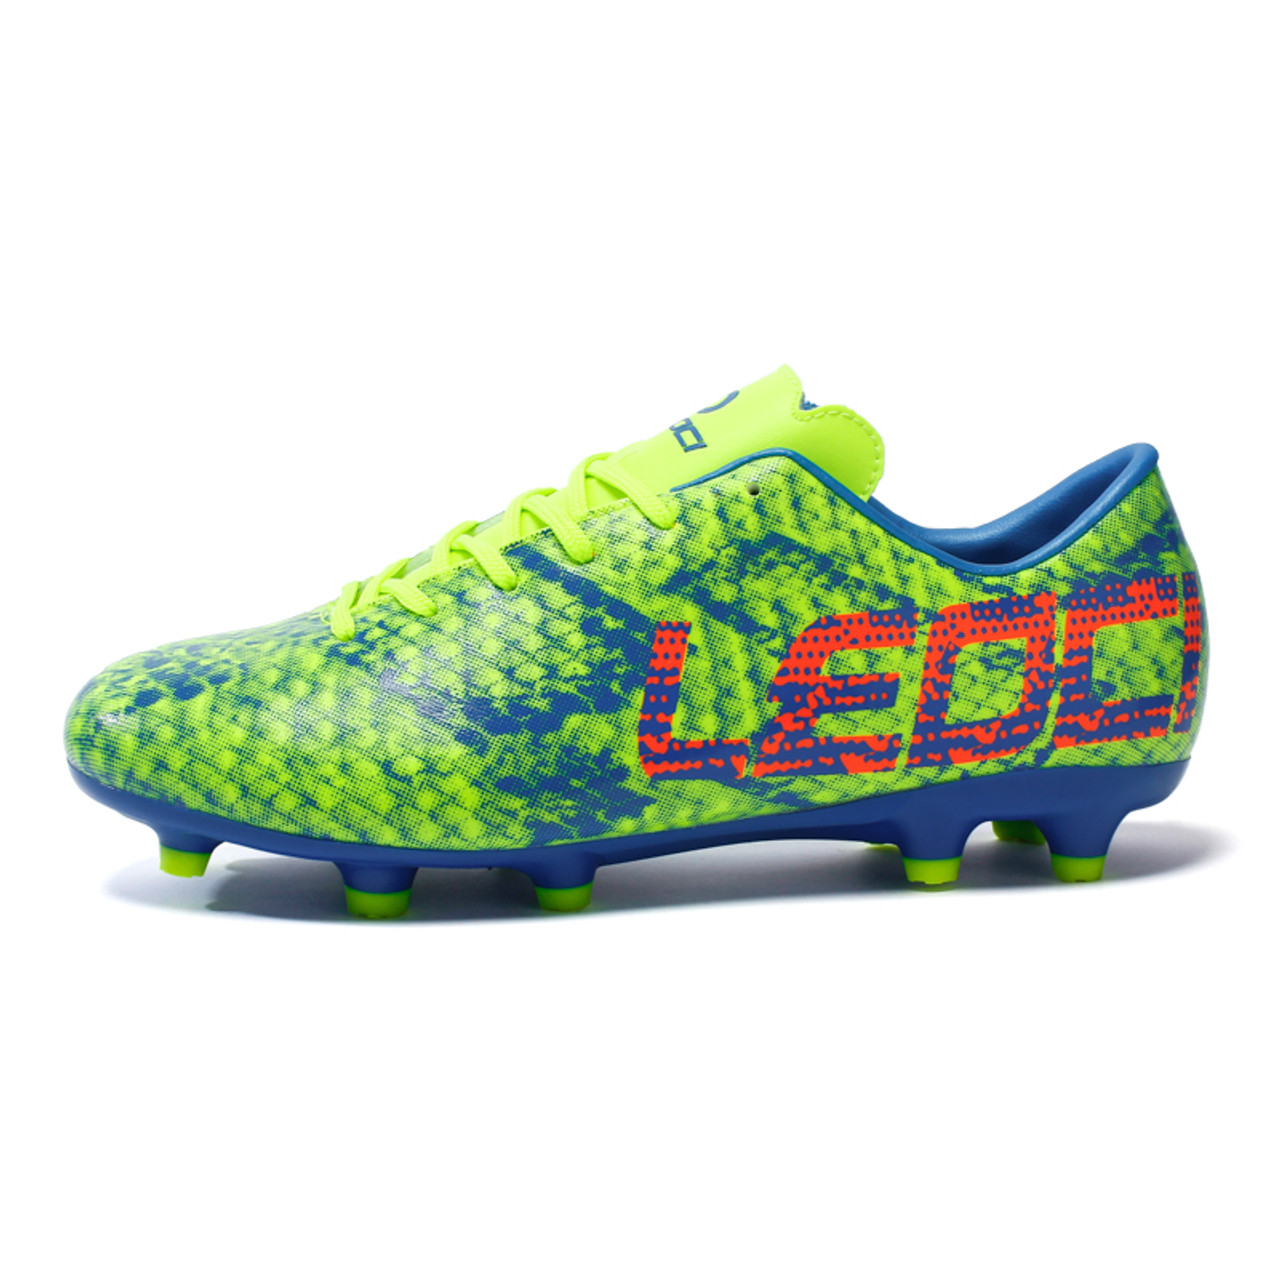 3023c7c840a ... Men Boys Kids Soccer Shoes Outdoor Lawn Long Spikes Soccer Boots Cleats  LEOCI Football Shoes For ...